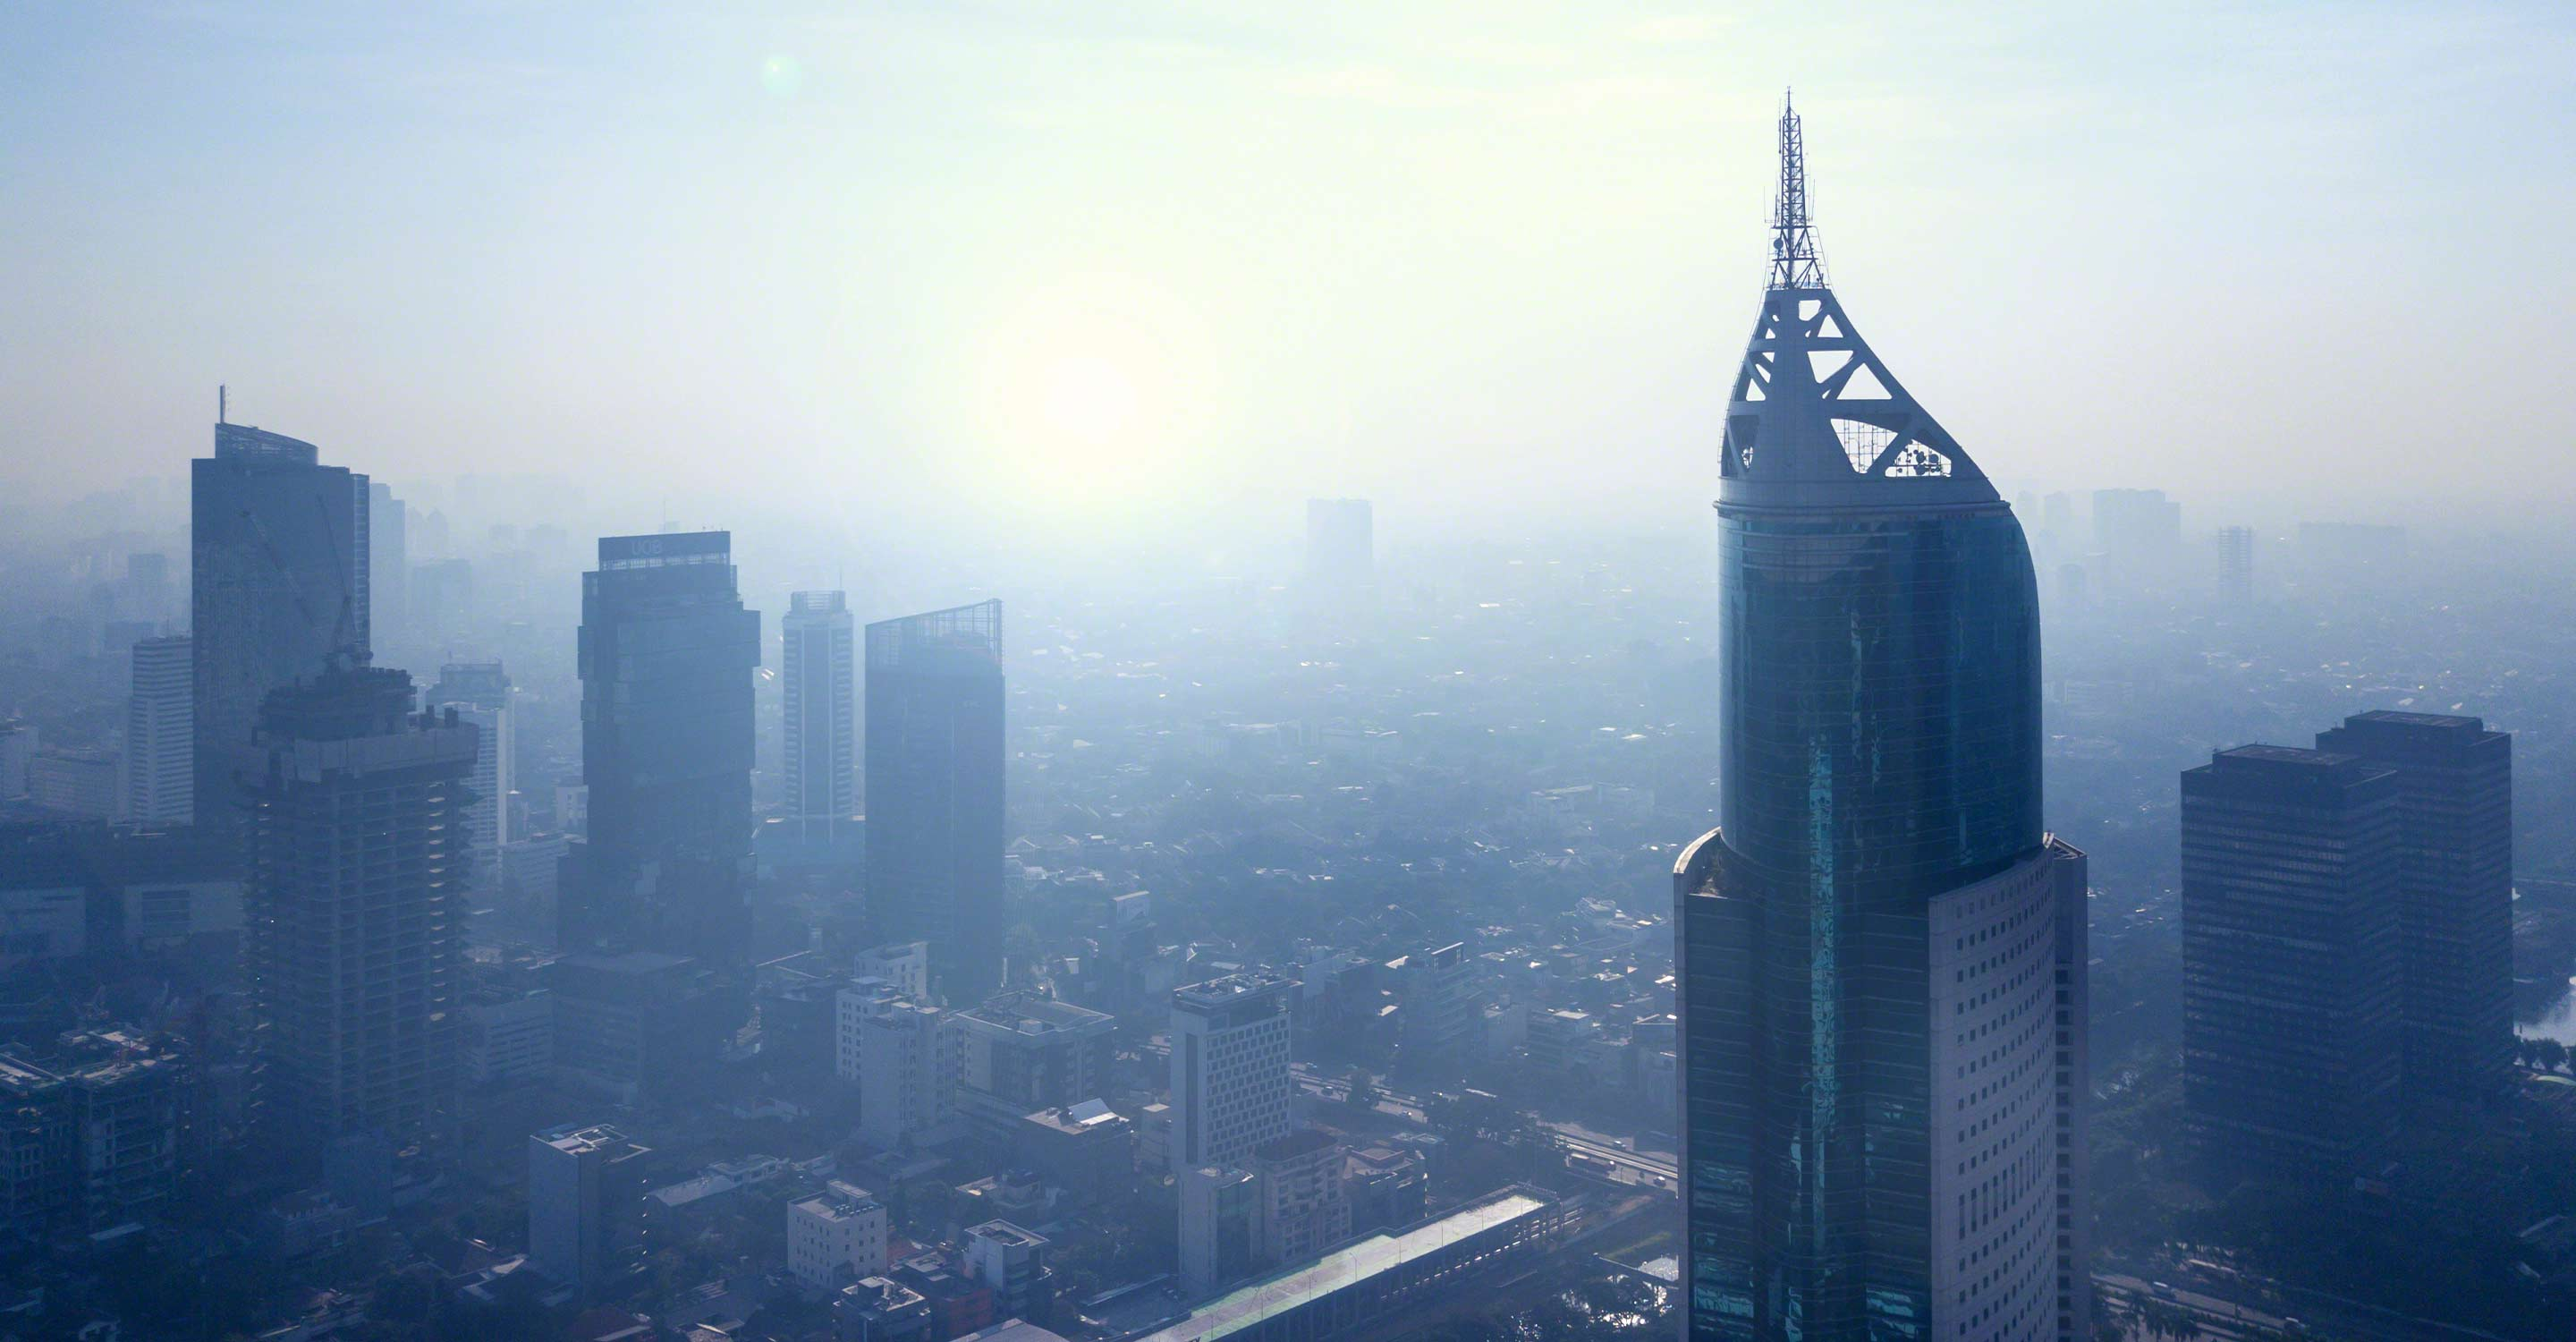 Indonesian court finds president negligent in air quality suit